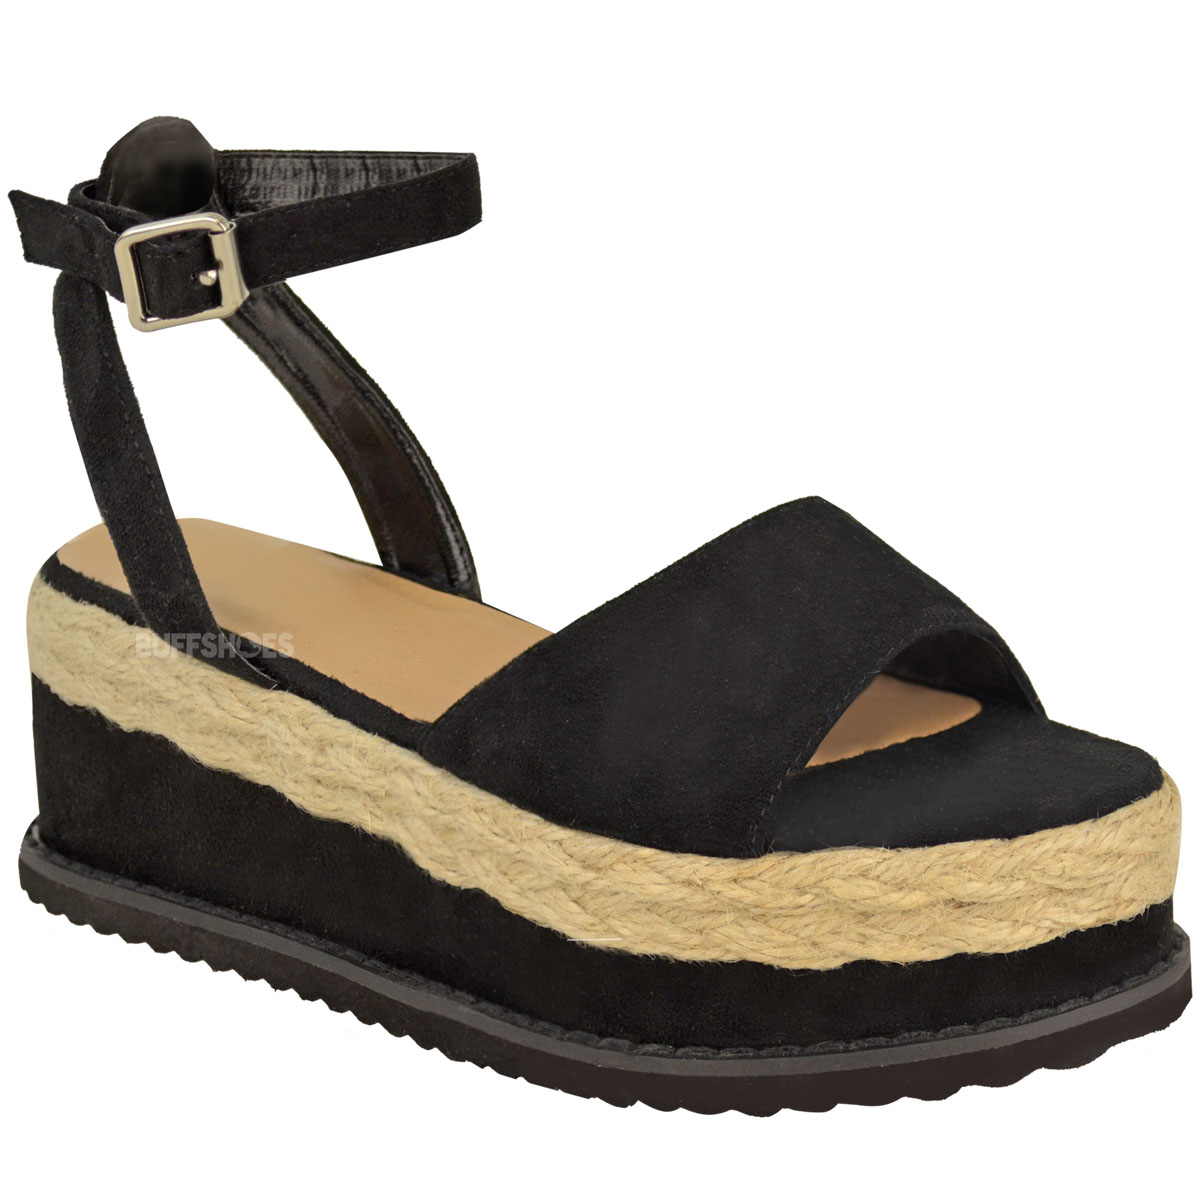 Women's Flatform Mary Shoes Black OTBT Jane Aura Your interests are activities you do because you enjoy them. Interests capture your attention, arouse your curiosity and satisfy your need to accomplish things. Identifying your work-related interests is an important part of career planning. You'll be more satisfied with your career direction if.